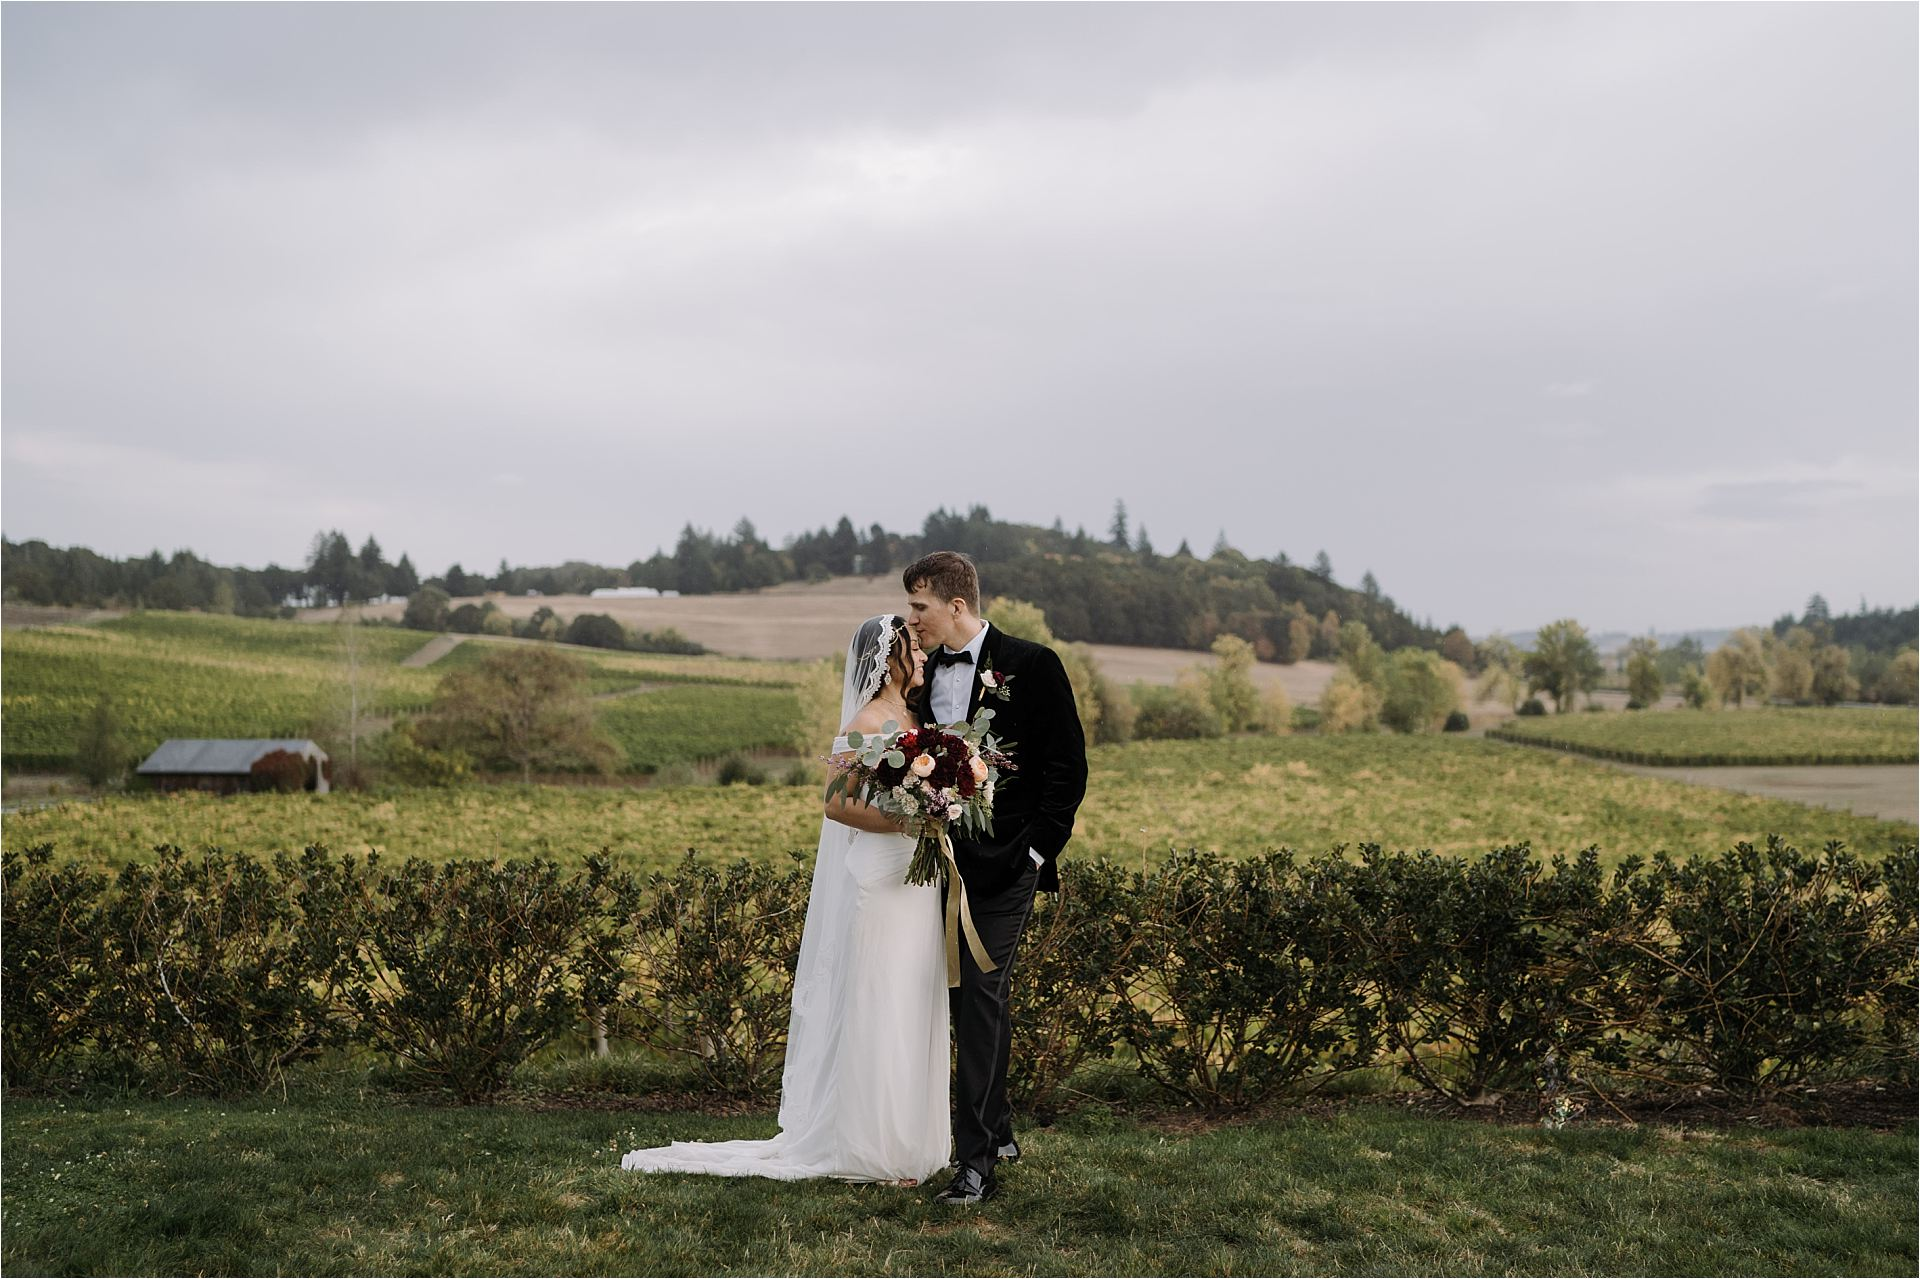 Bride and Groom kissing at the Zenith Vineyard during their wedding